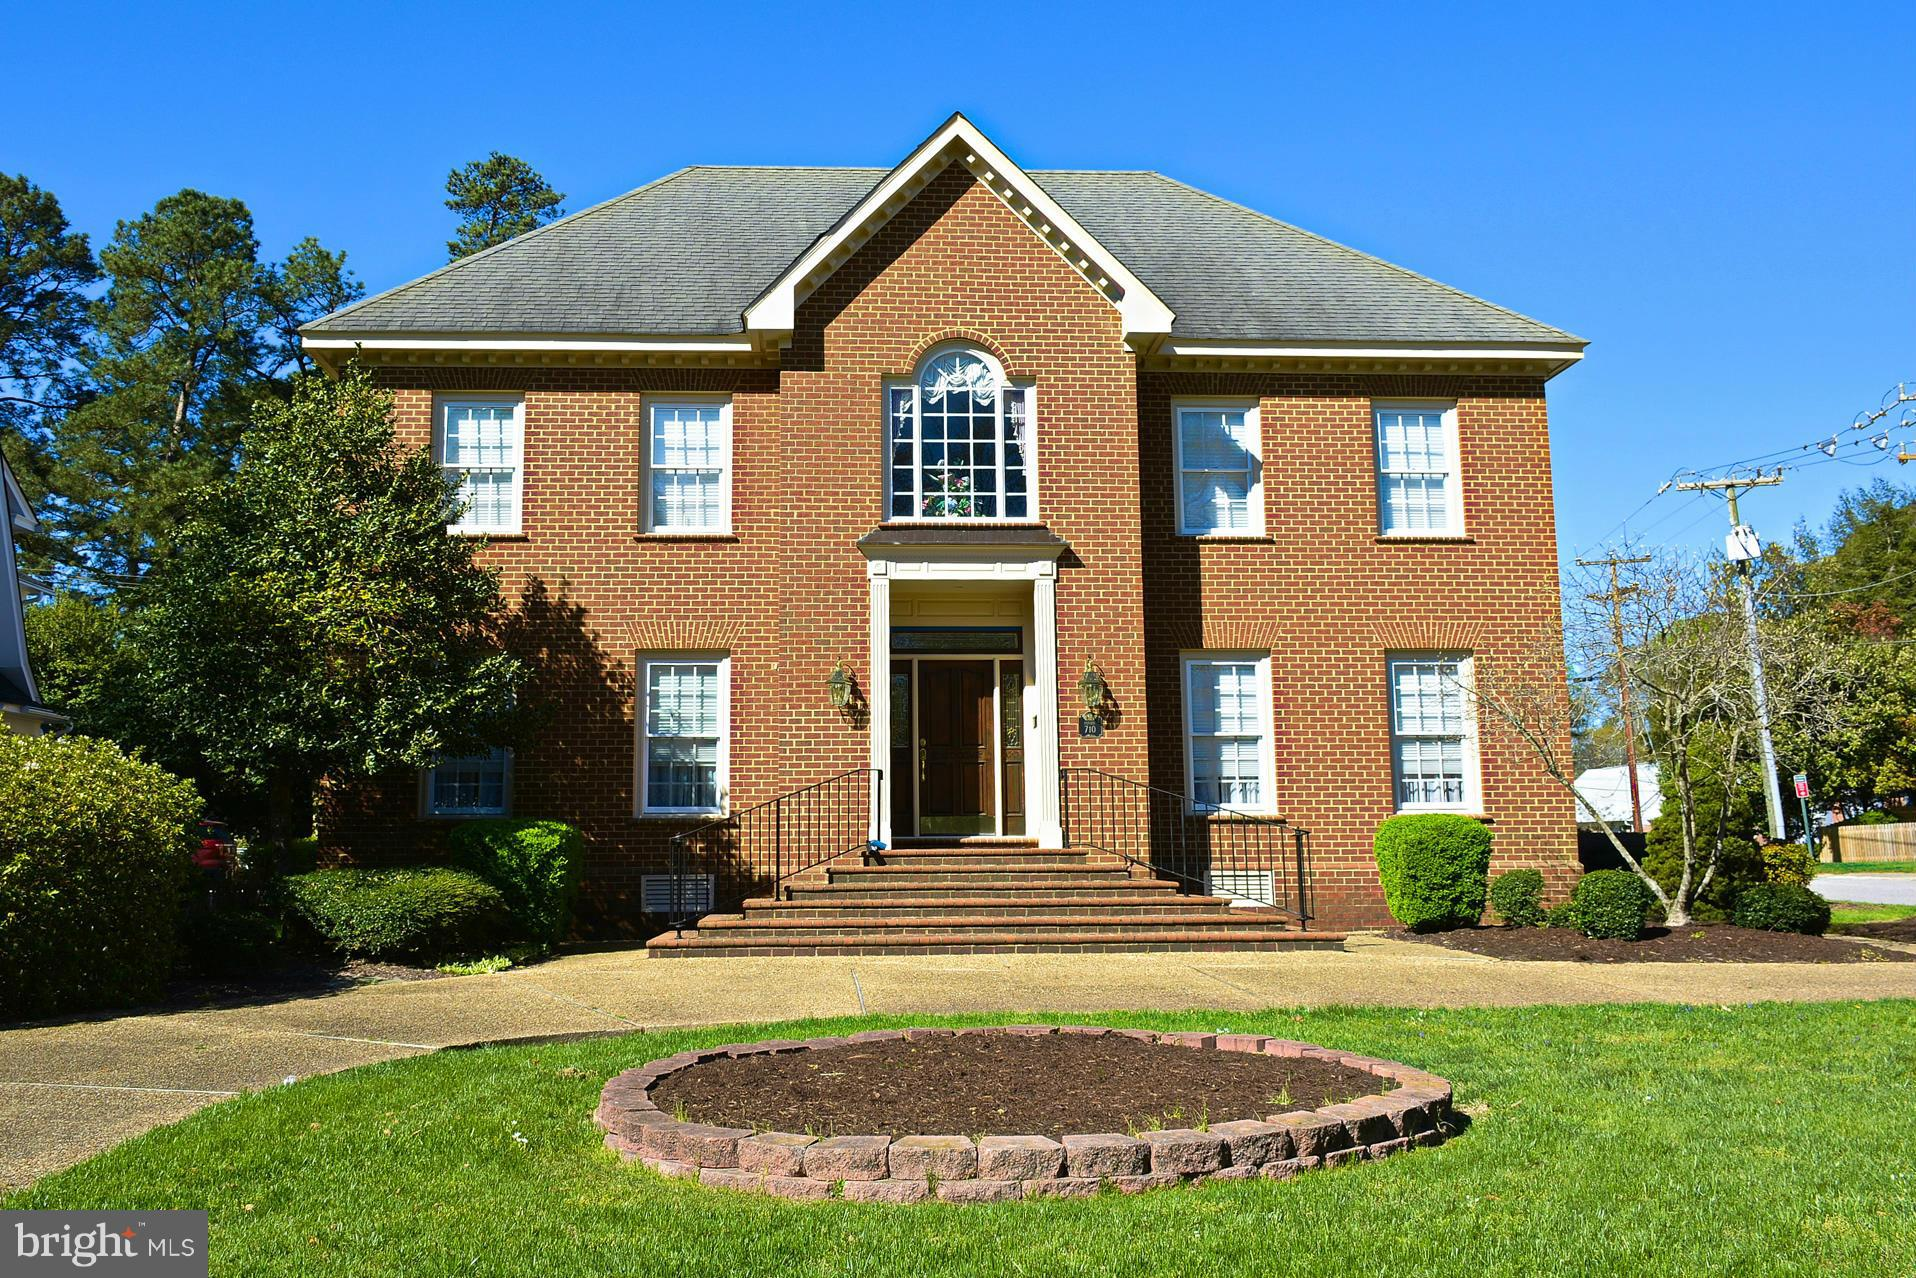 710 RICHMOND ROAD, WILLIAMSBURG, VA 23185